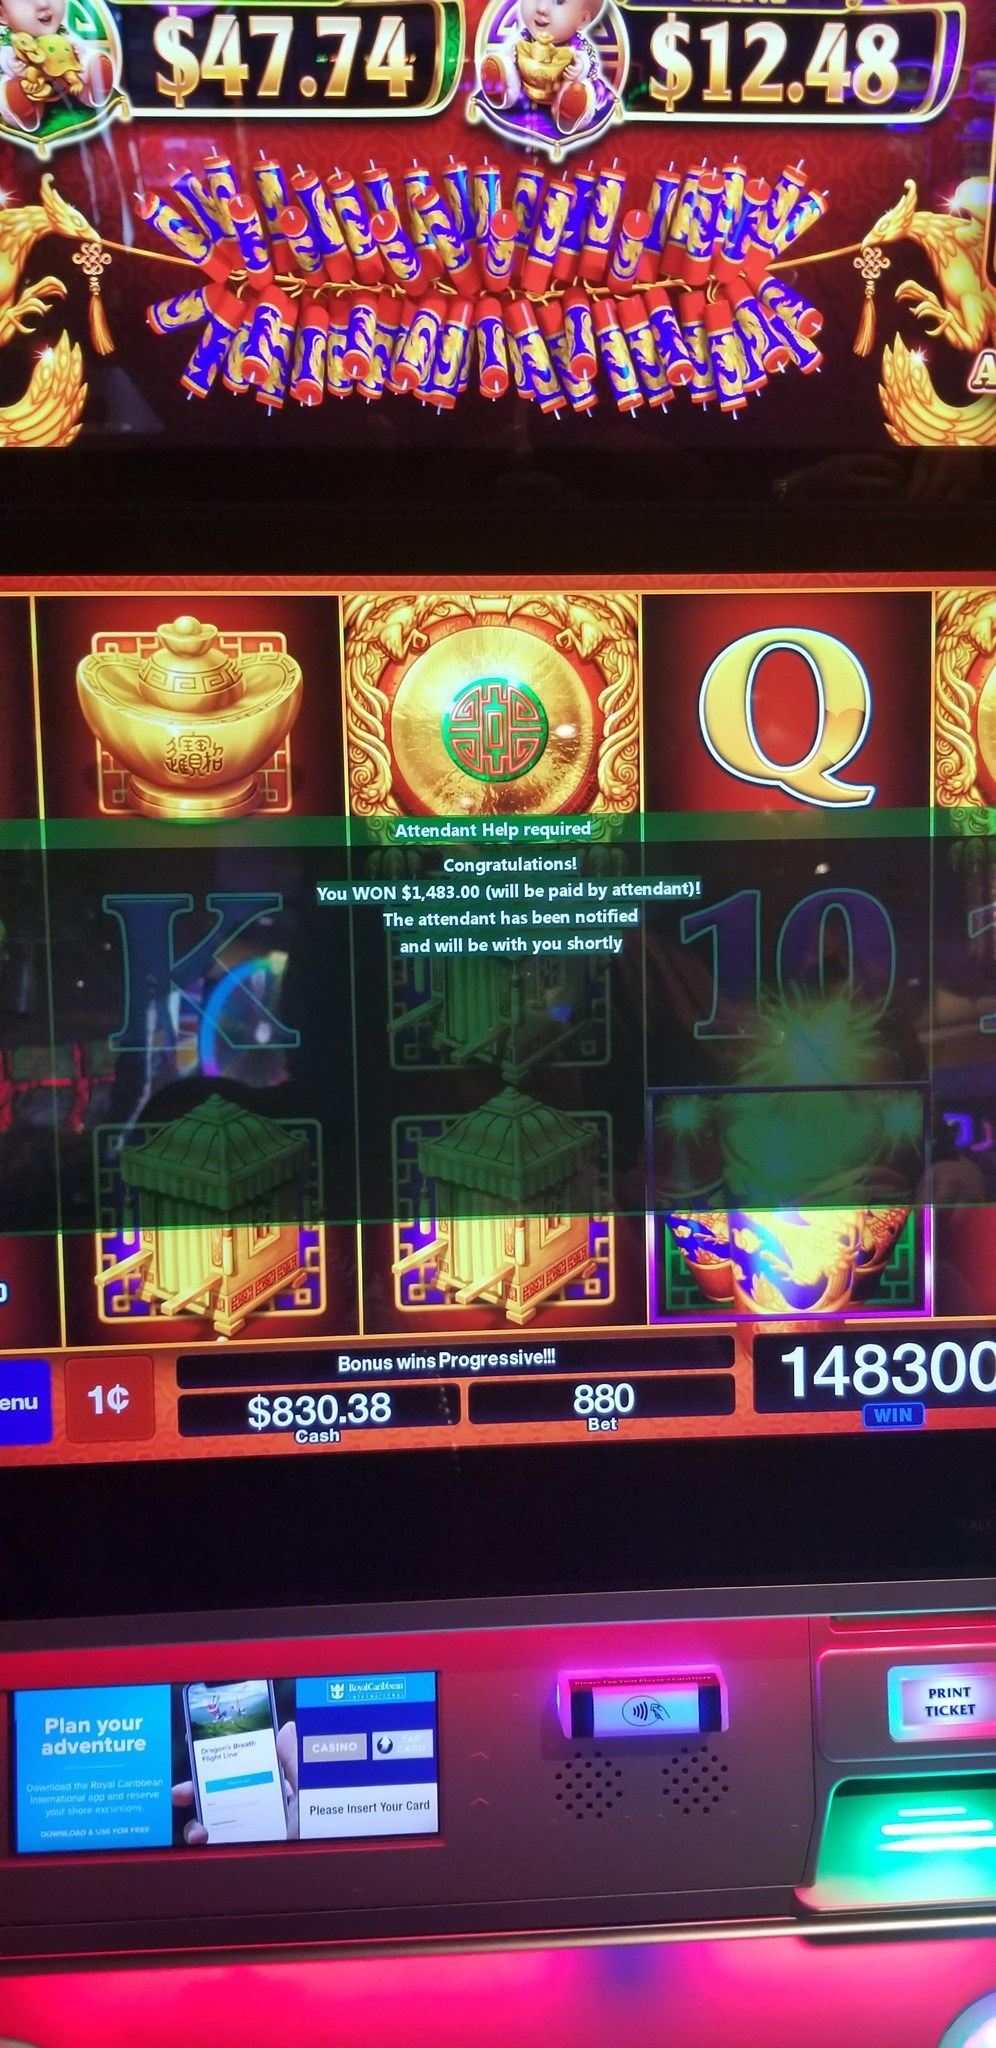 Maneki casino withdrawal